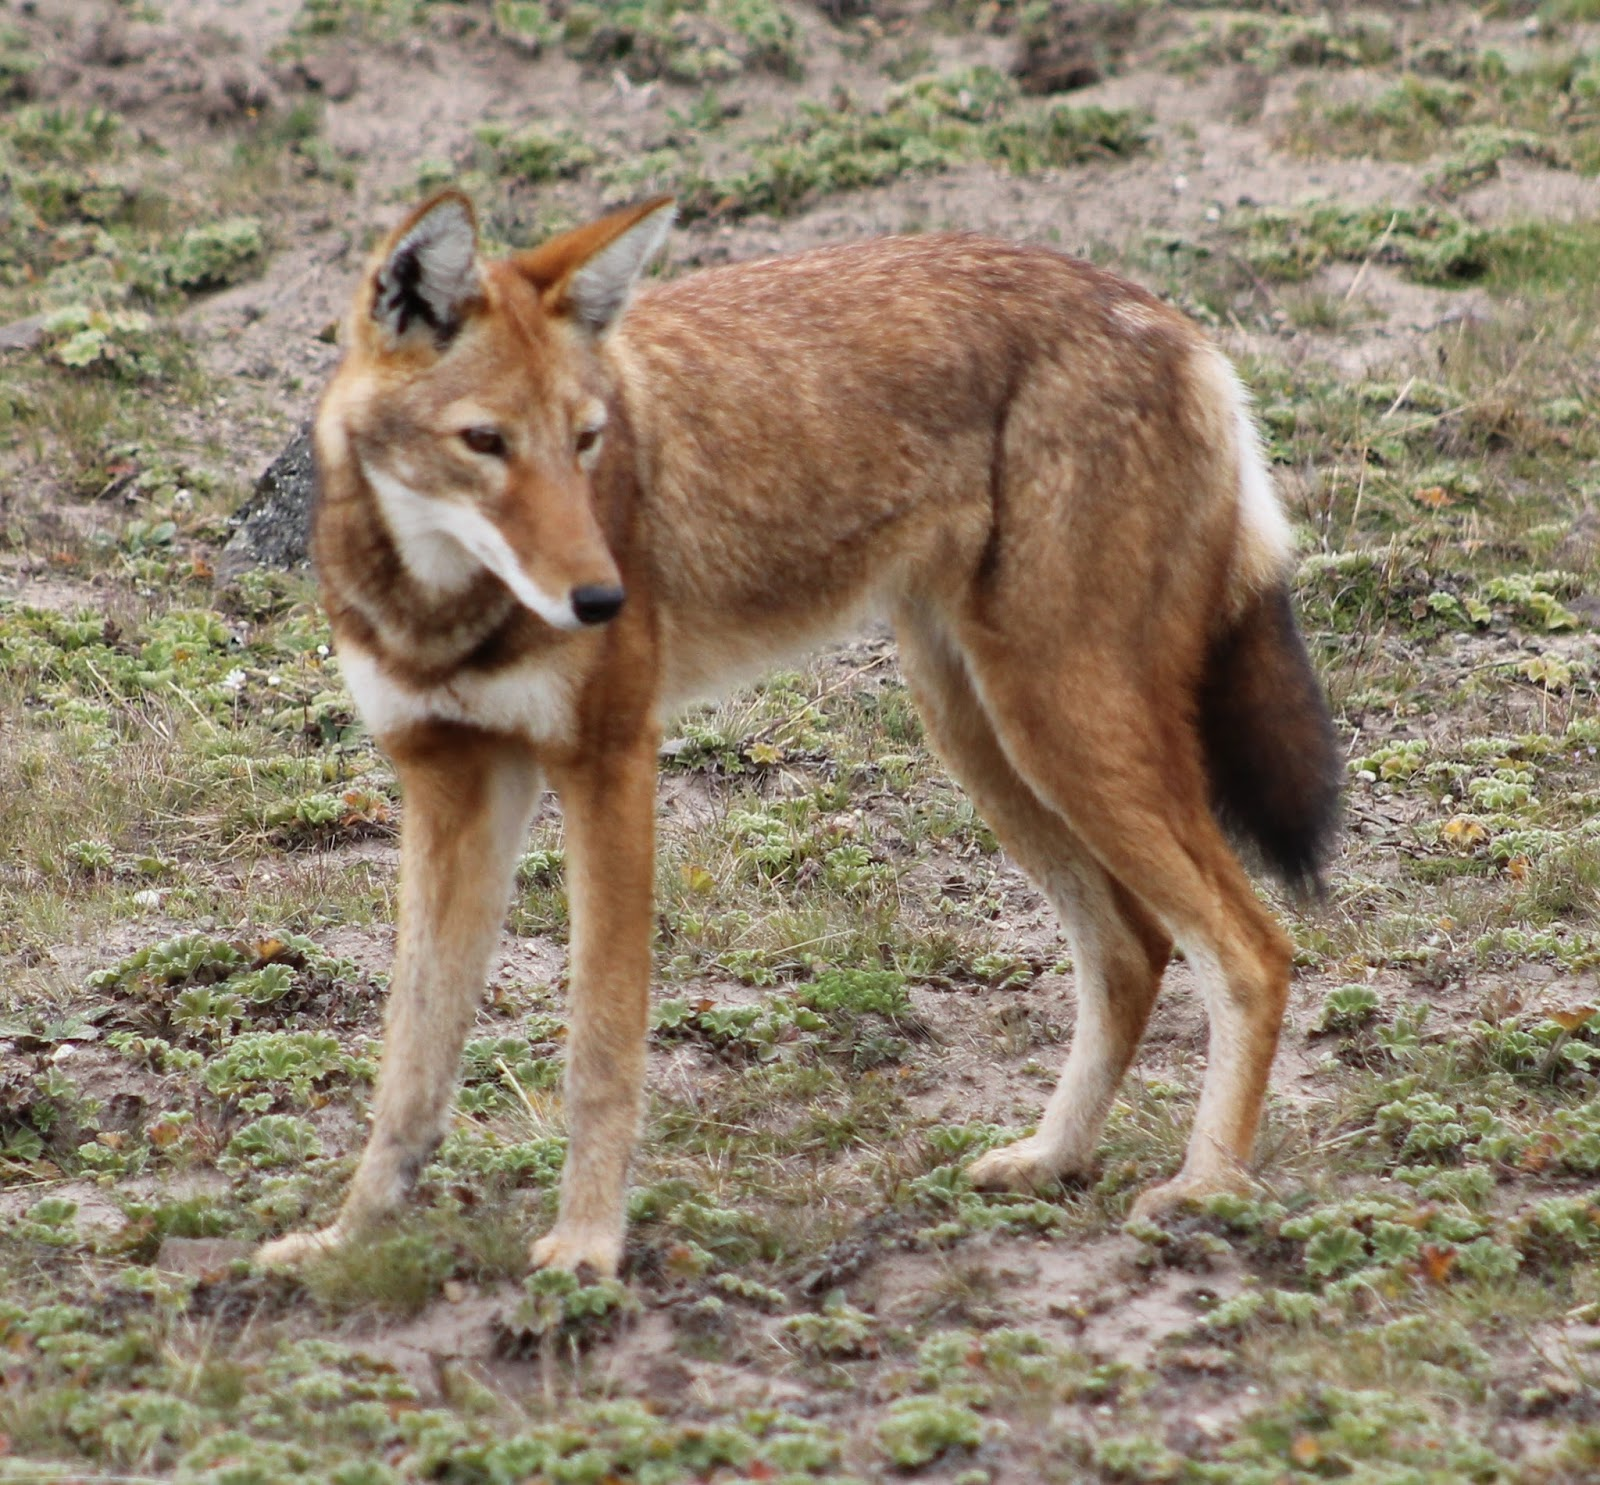 wolf ethiopian wild dog animals fox dogs species animal ethiopia canis simensis african rare endangered wikipedia wolves jackal canine found